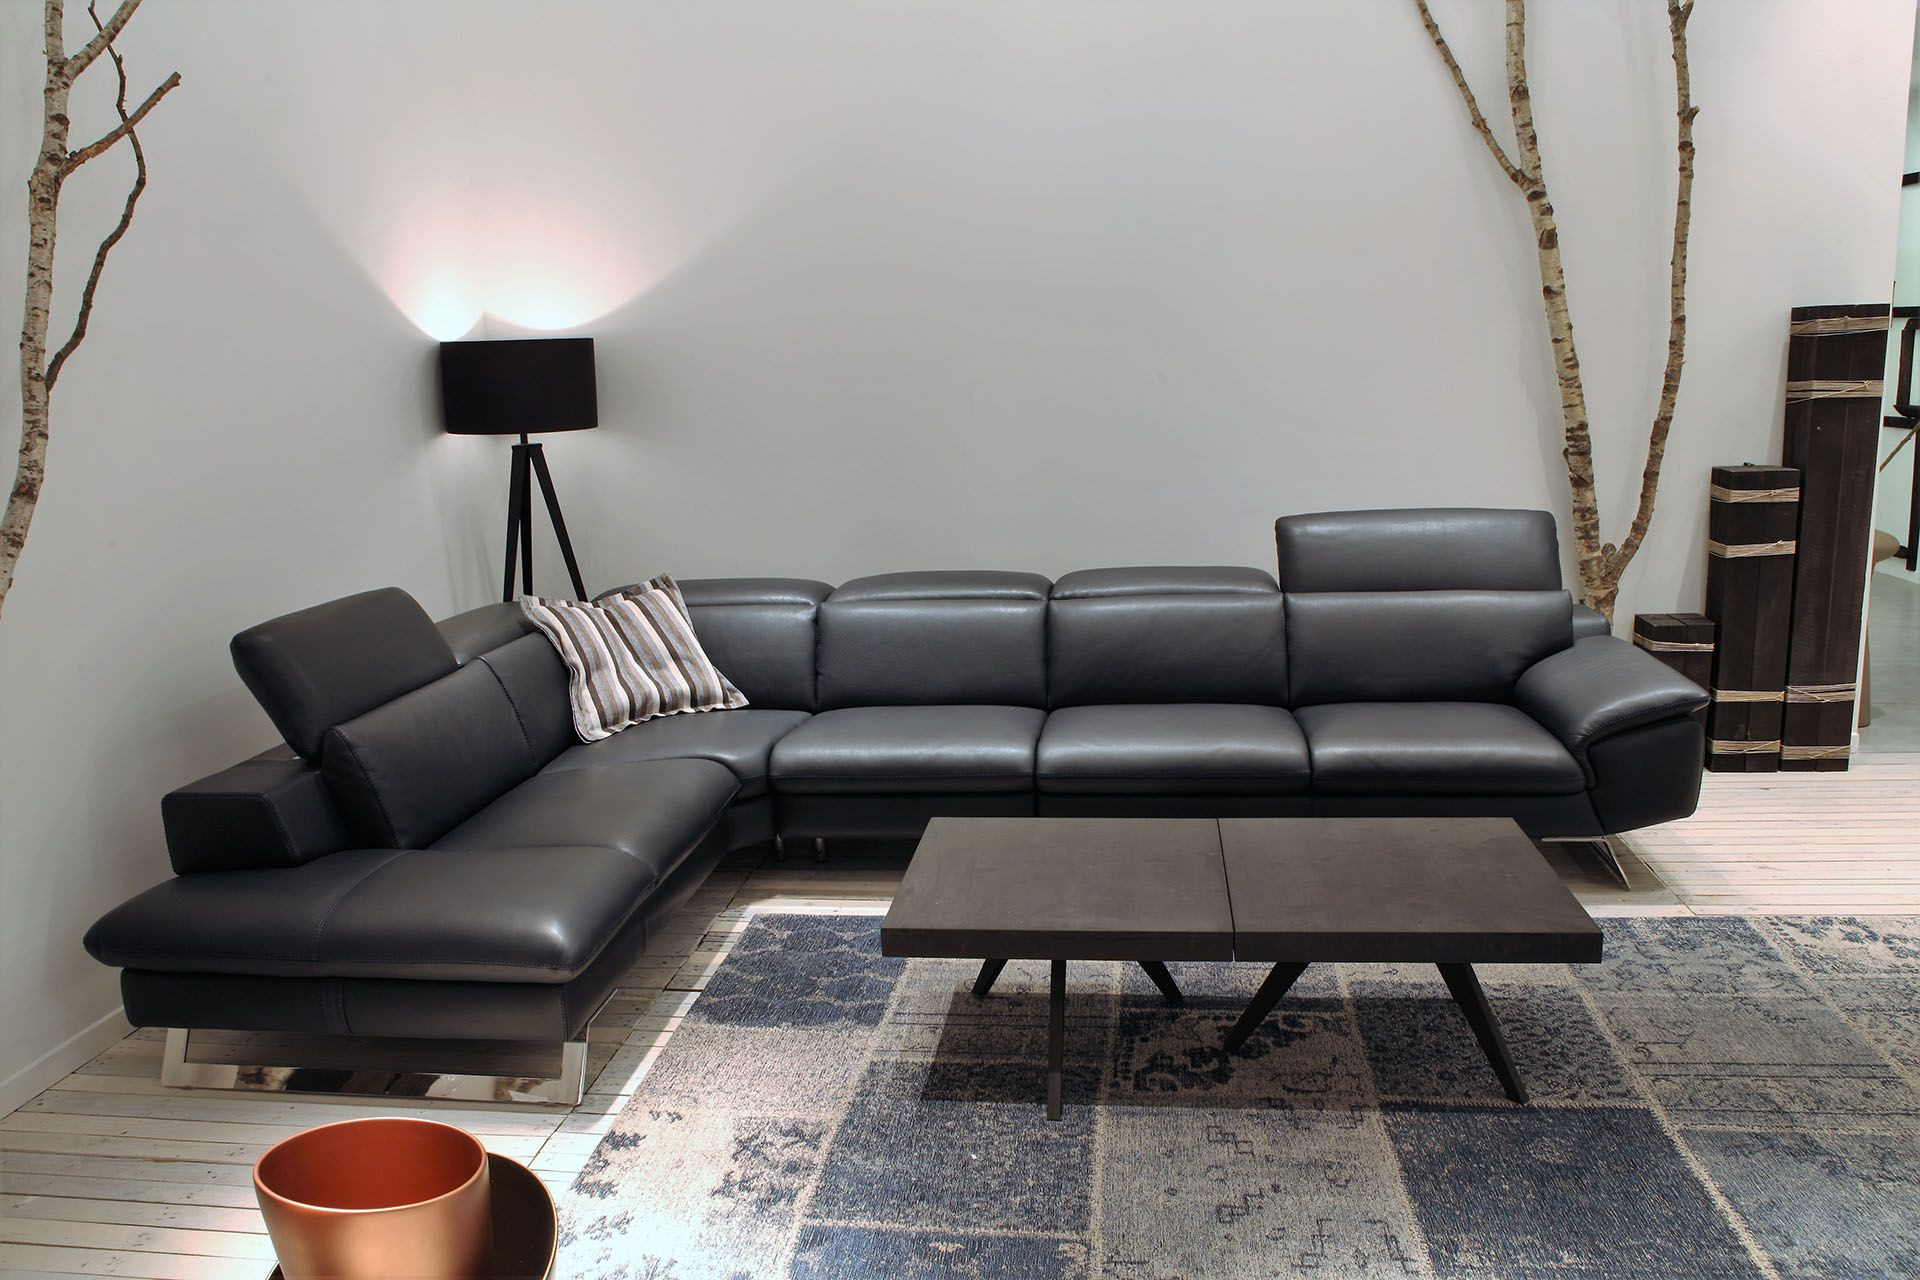 Swell Pin On Desirable Living Rooms With Italian Sofas Ncnpc Chair Design For Home Ncnpcorg